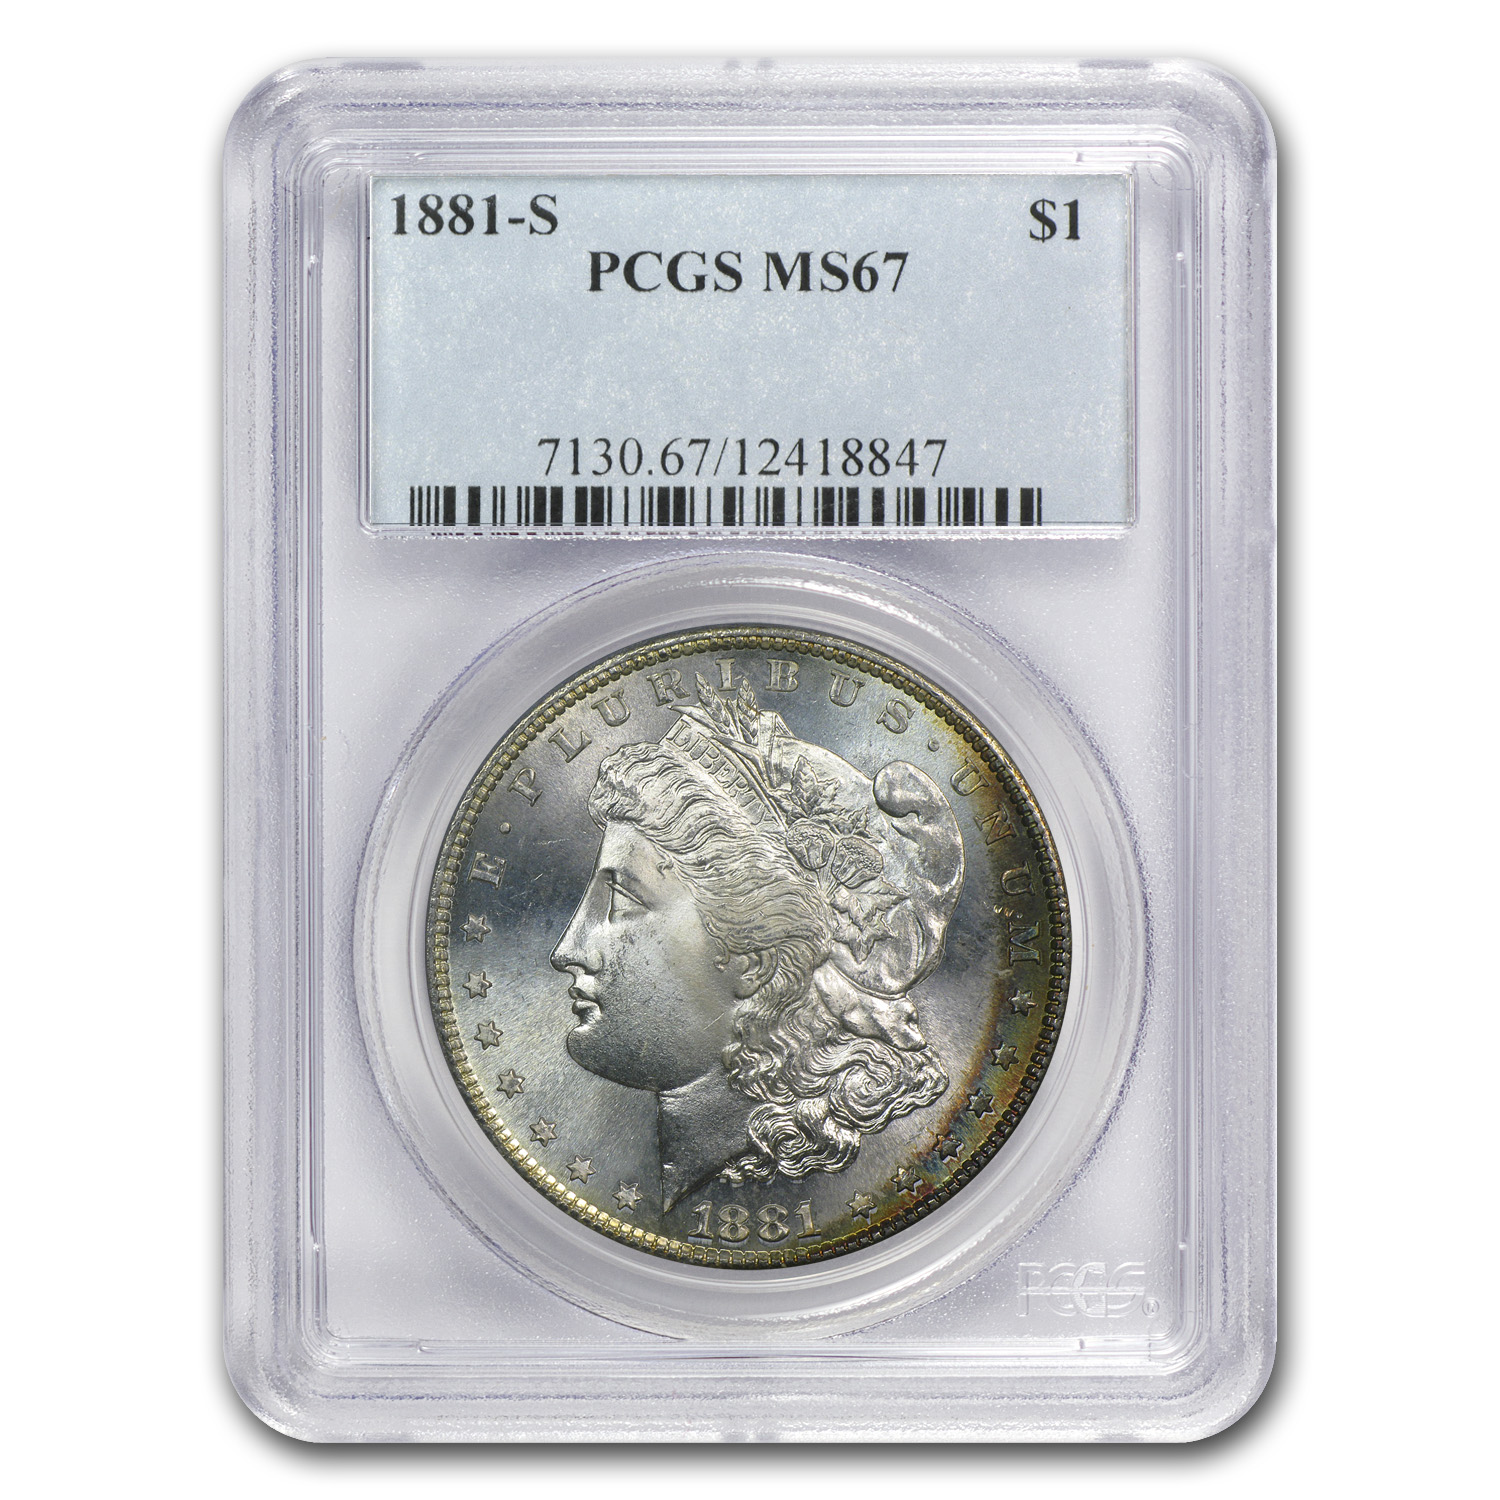 1881-S Morgan Dollar - MS-67 PCGS - Crescent Toning